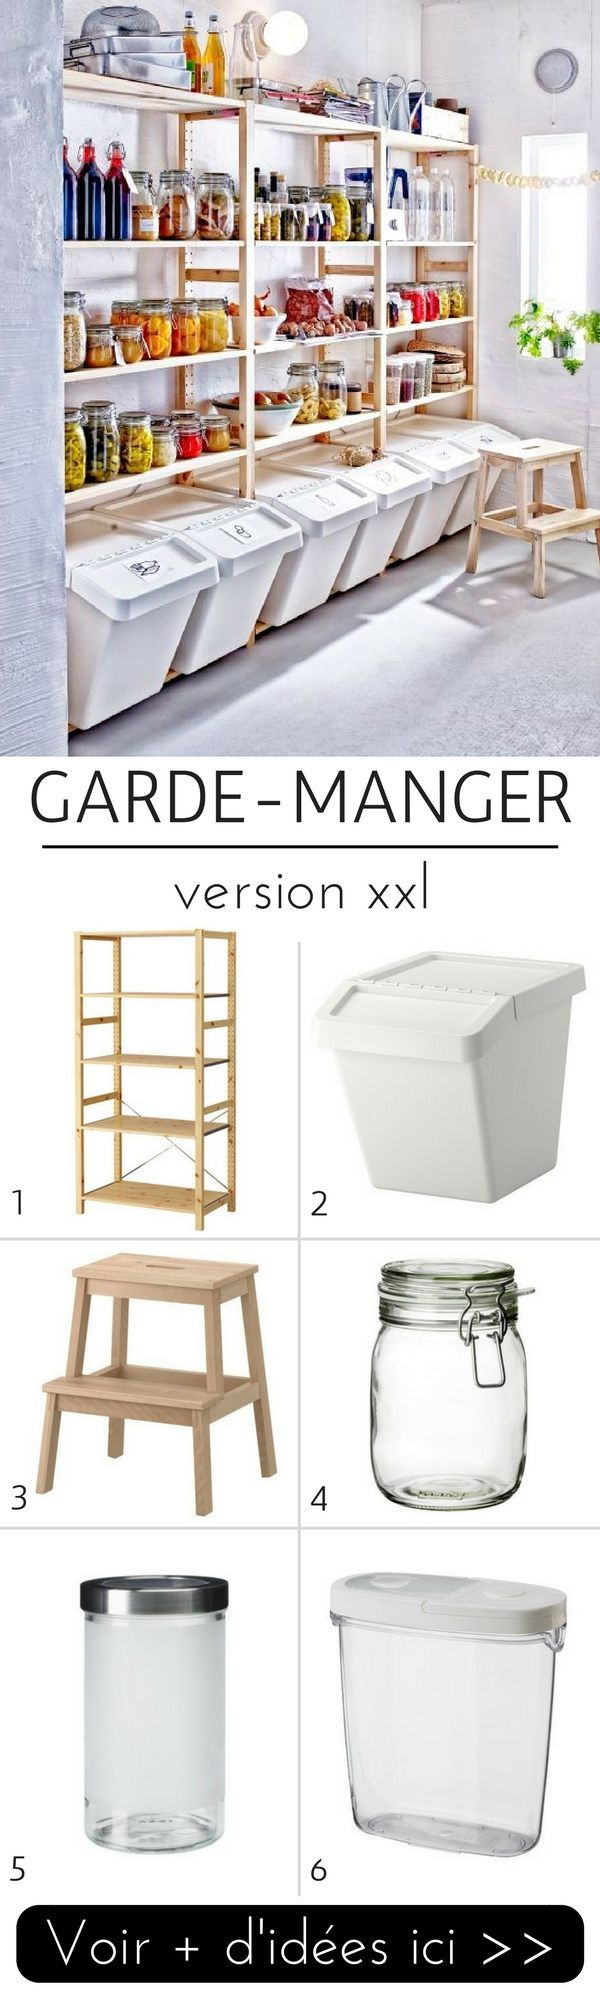 25 best ikea ideas on pinterest ikea ideas ikea storage and ikea decor - Rangement cellier ikea ...